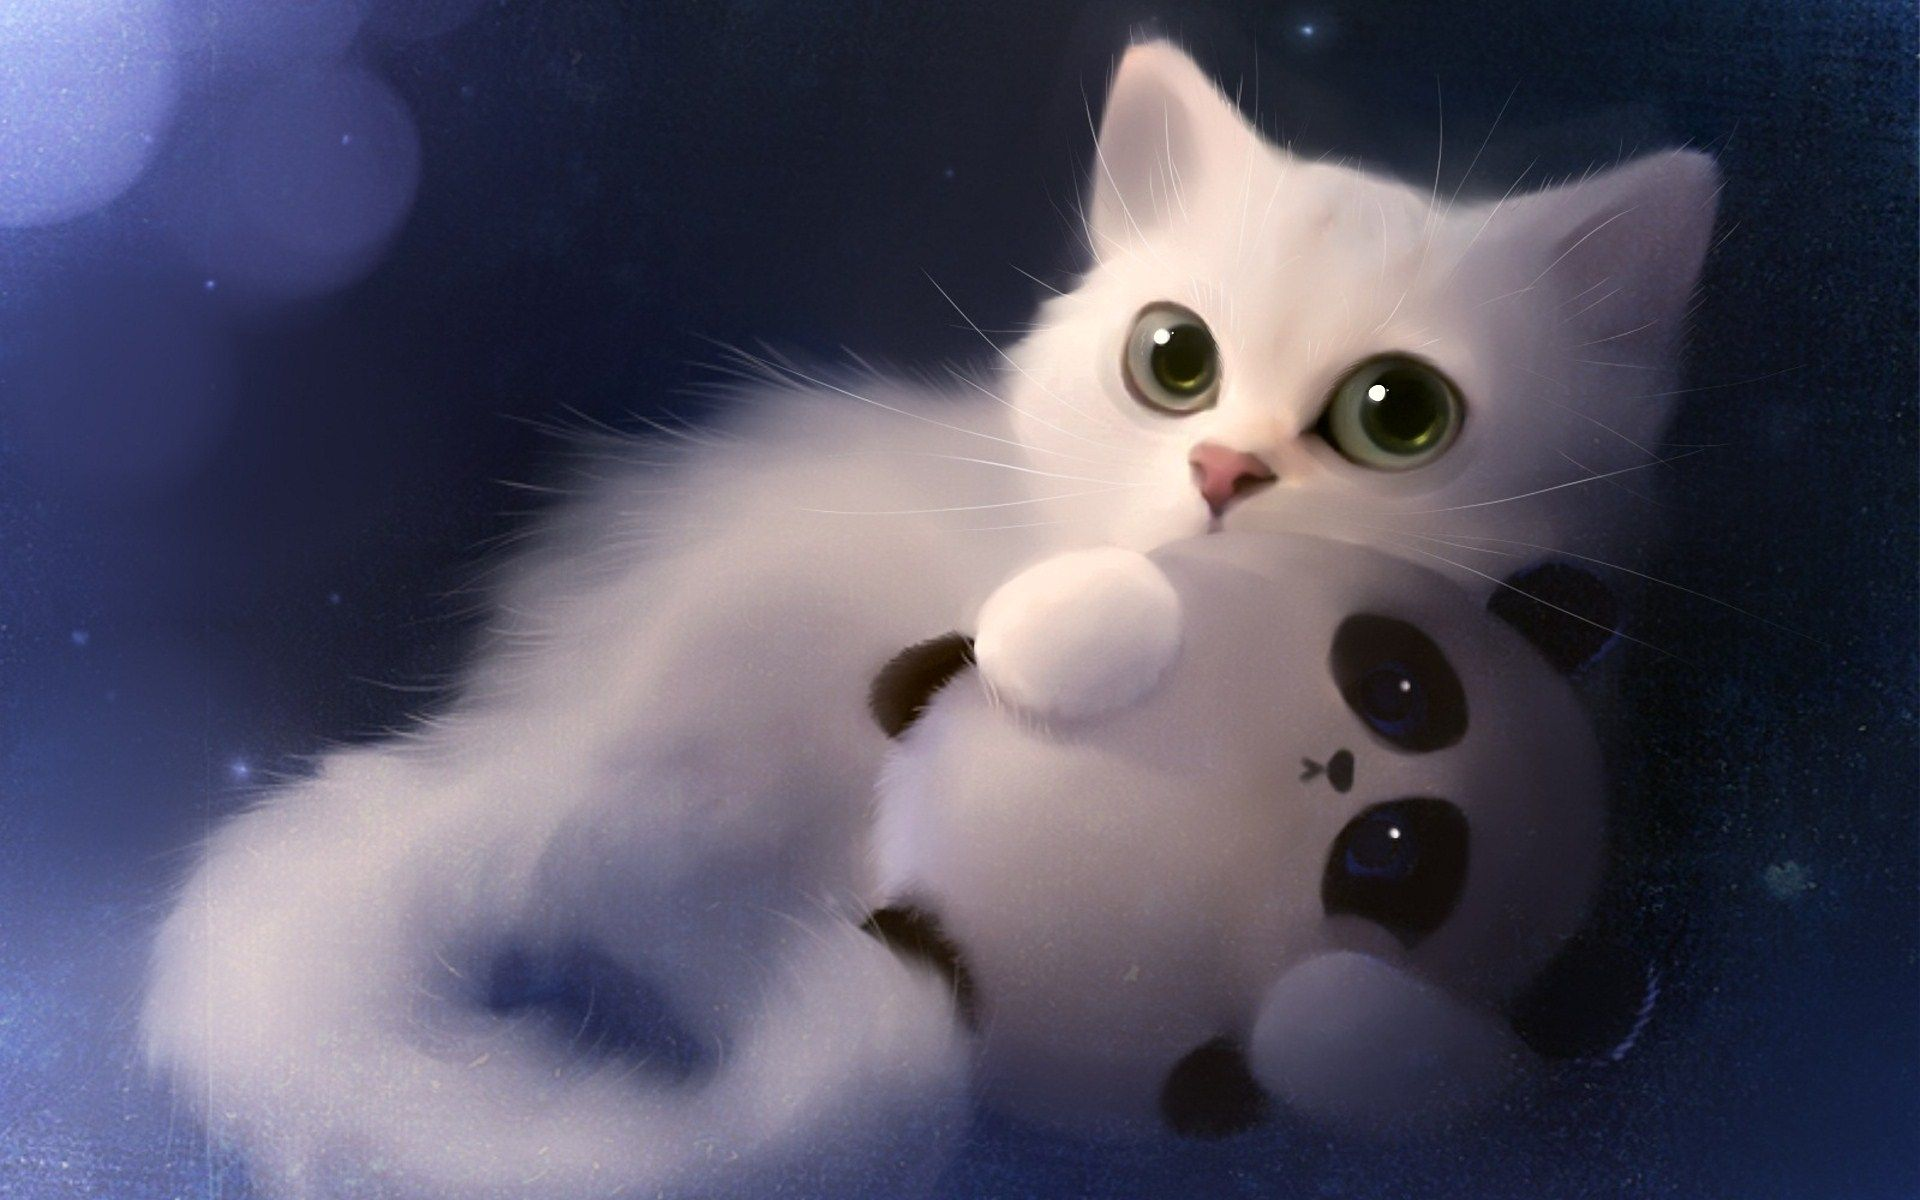 Cat Panda Cute Wallpaper Whimsie di 2019 Kucing Seni kucing 1920x1200